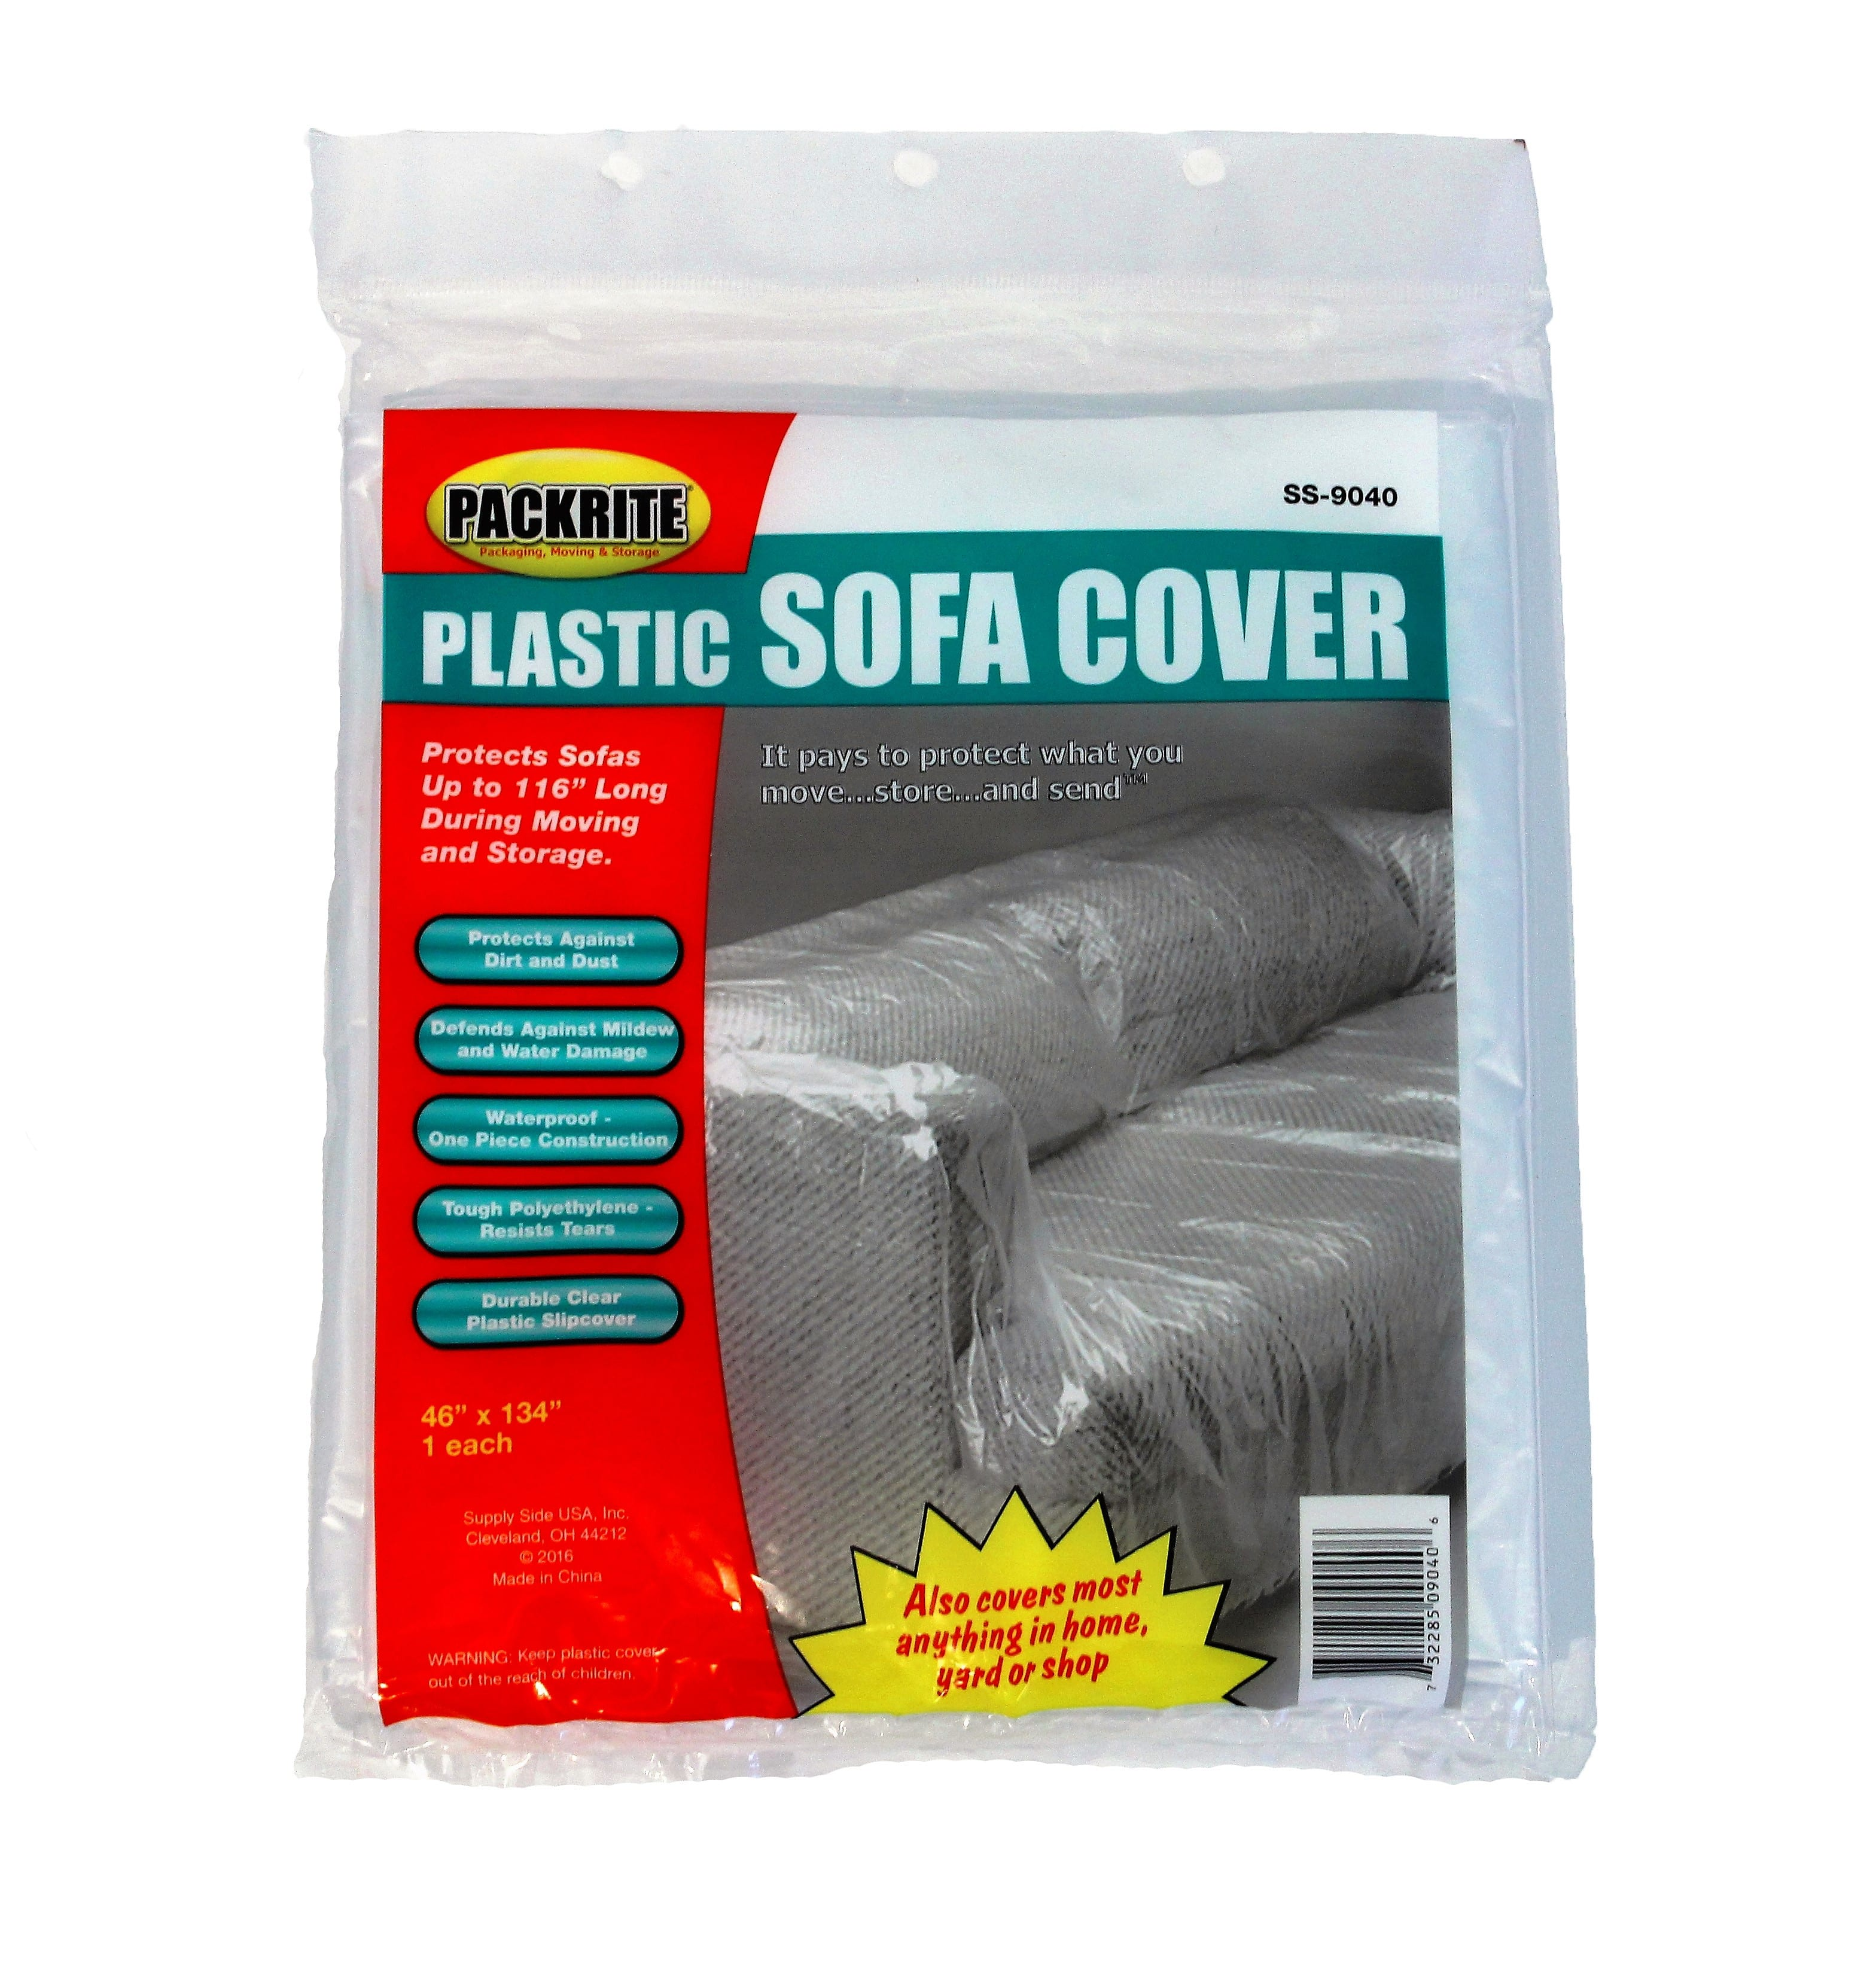 sofa cover storage bag serta cornell bed reviews guardian self pittsburgh and colorado